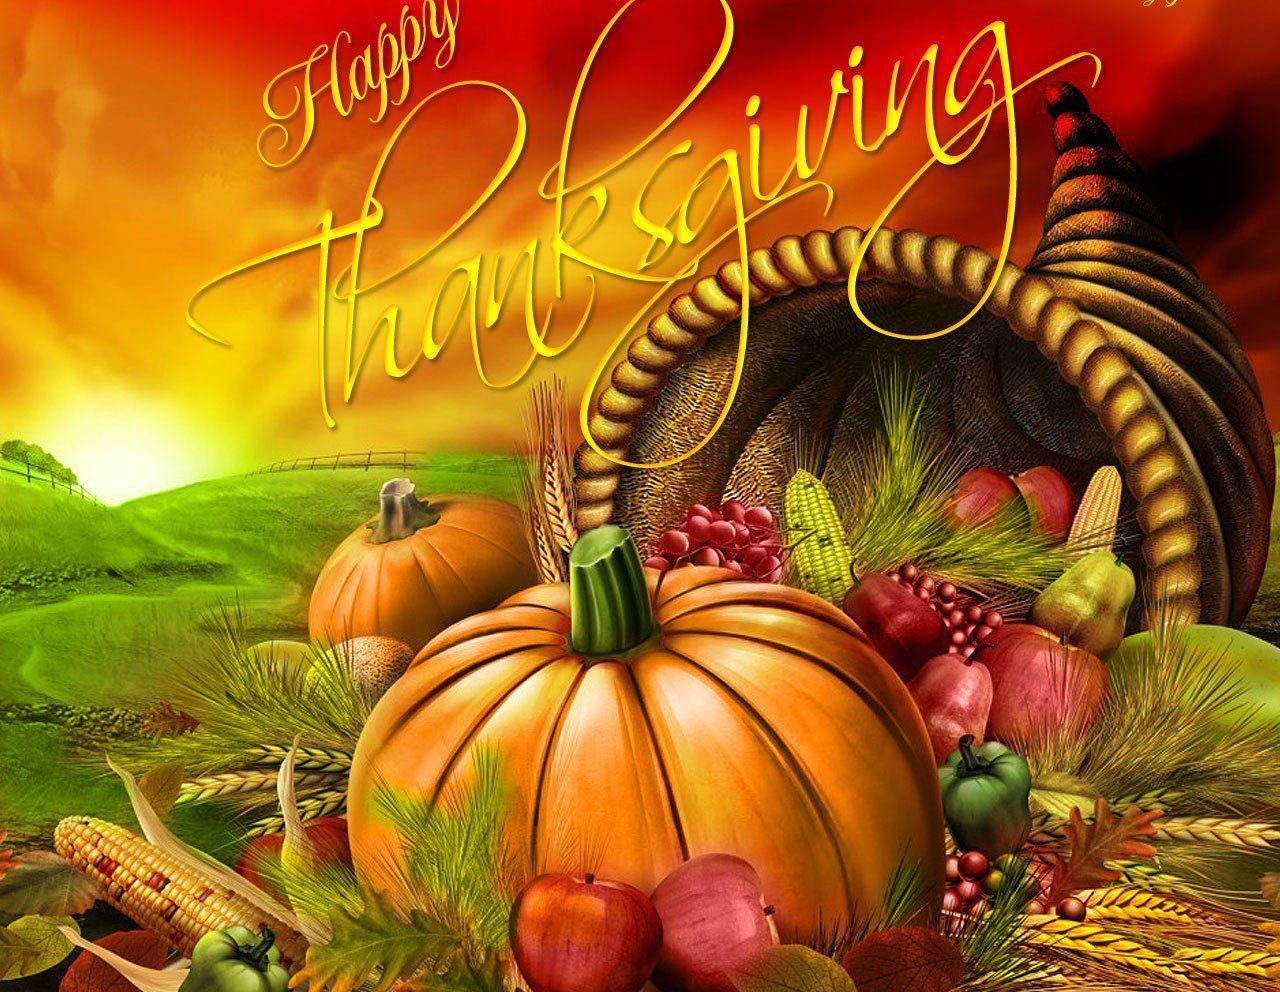 Happy Thanksgiving Day Pumpkin Background Latest Hd Photos